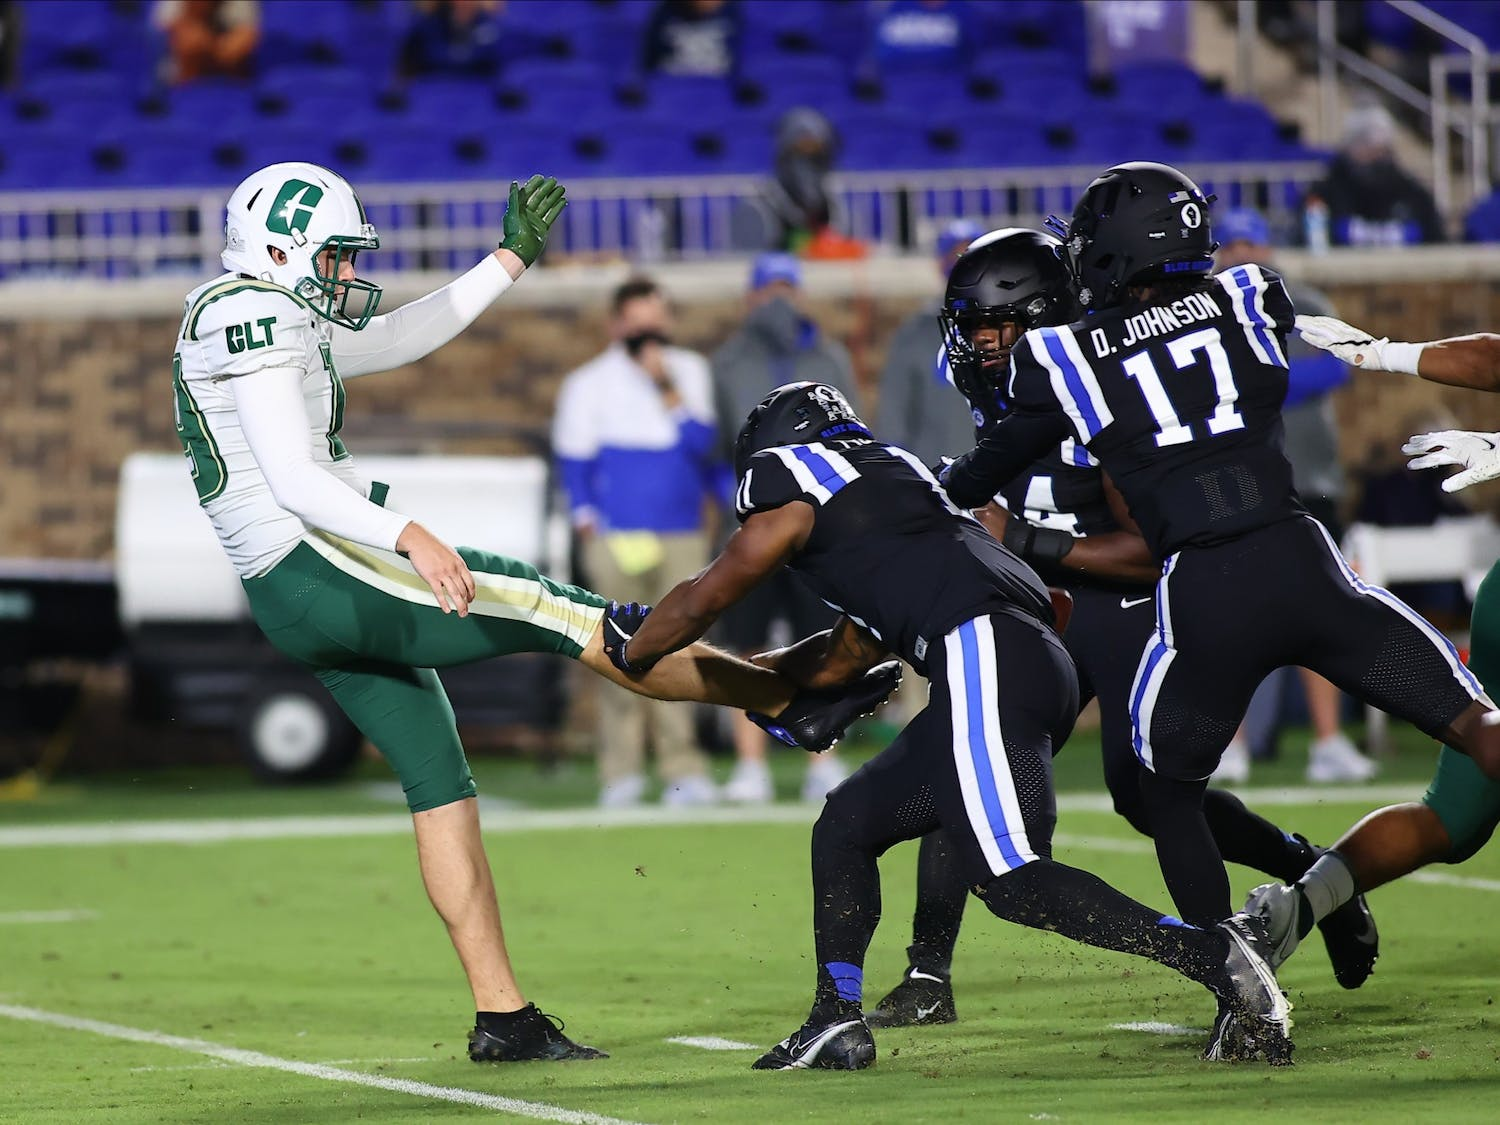 Two blocked punts, both by freshman safety Isaiah Fisher-Smith, was just one of the many unusual aspects of Saturday's contest.